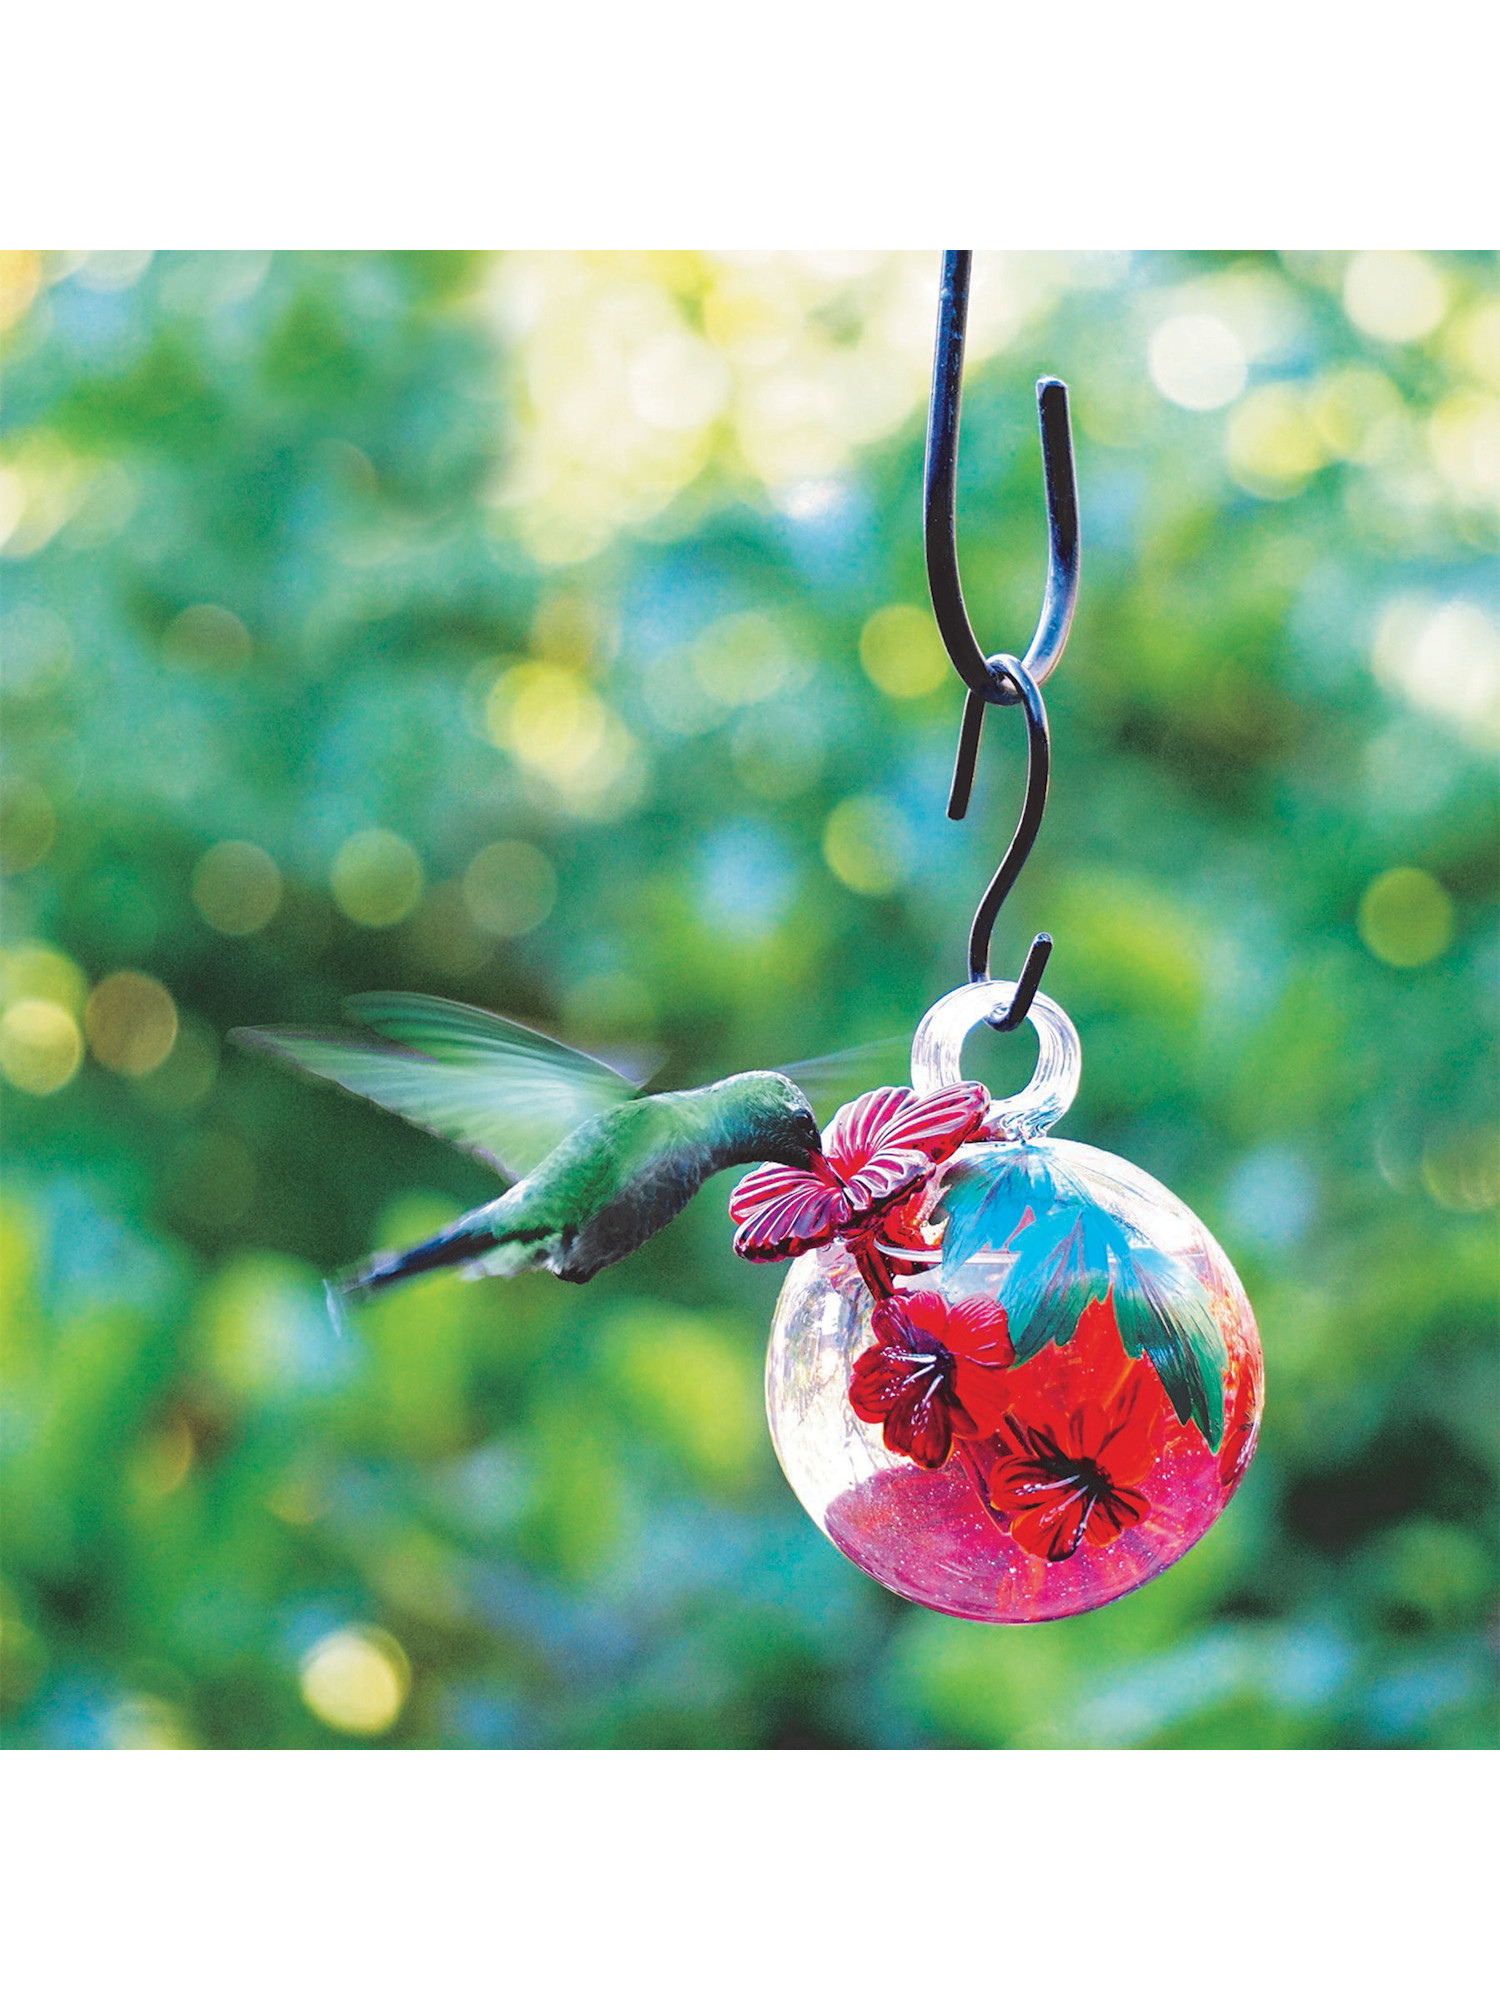 Parasol Droplet Glass Hummingbird Feeder   Hand Blown Floral Painted  Eco Friendly Nectar Holder With